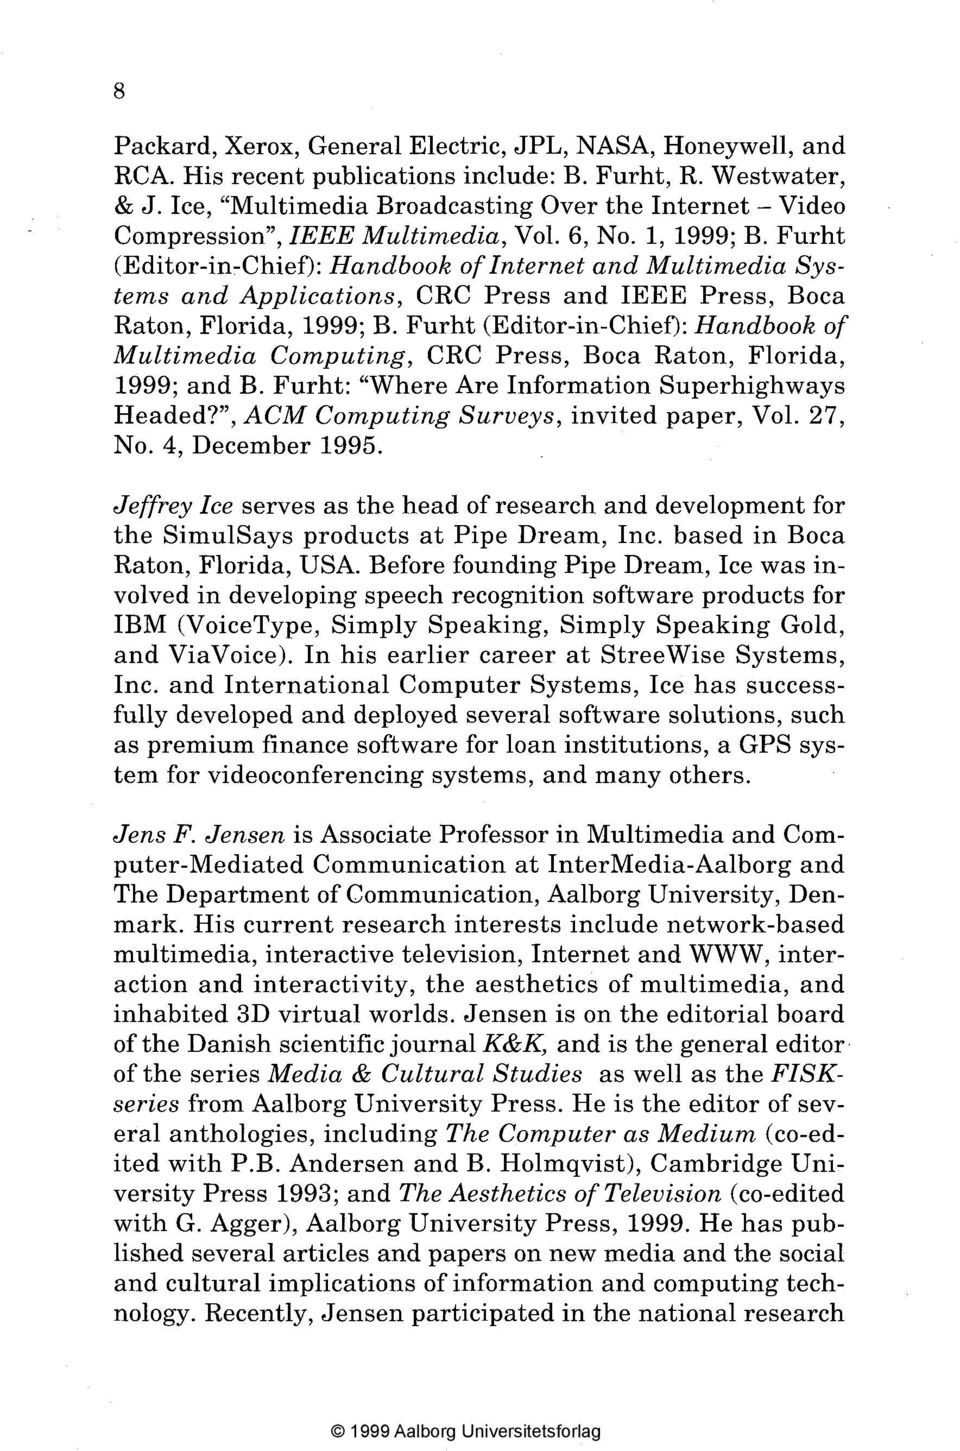 Furht (Editor-in-Chief): Handbook of Internet and Multimedia Systems and Applications, CRC Press and IEEE Press, Boca Raton, Florida, 1999; B.